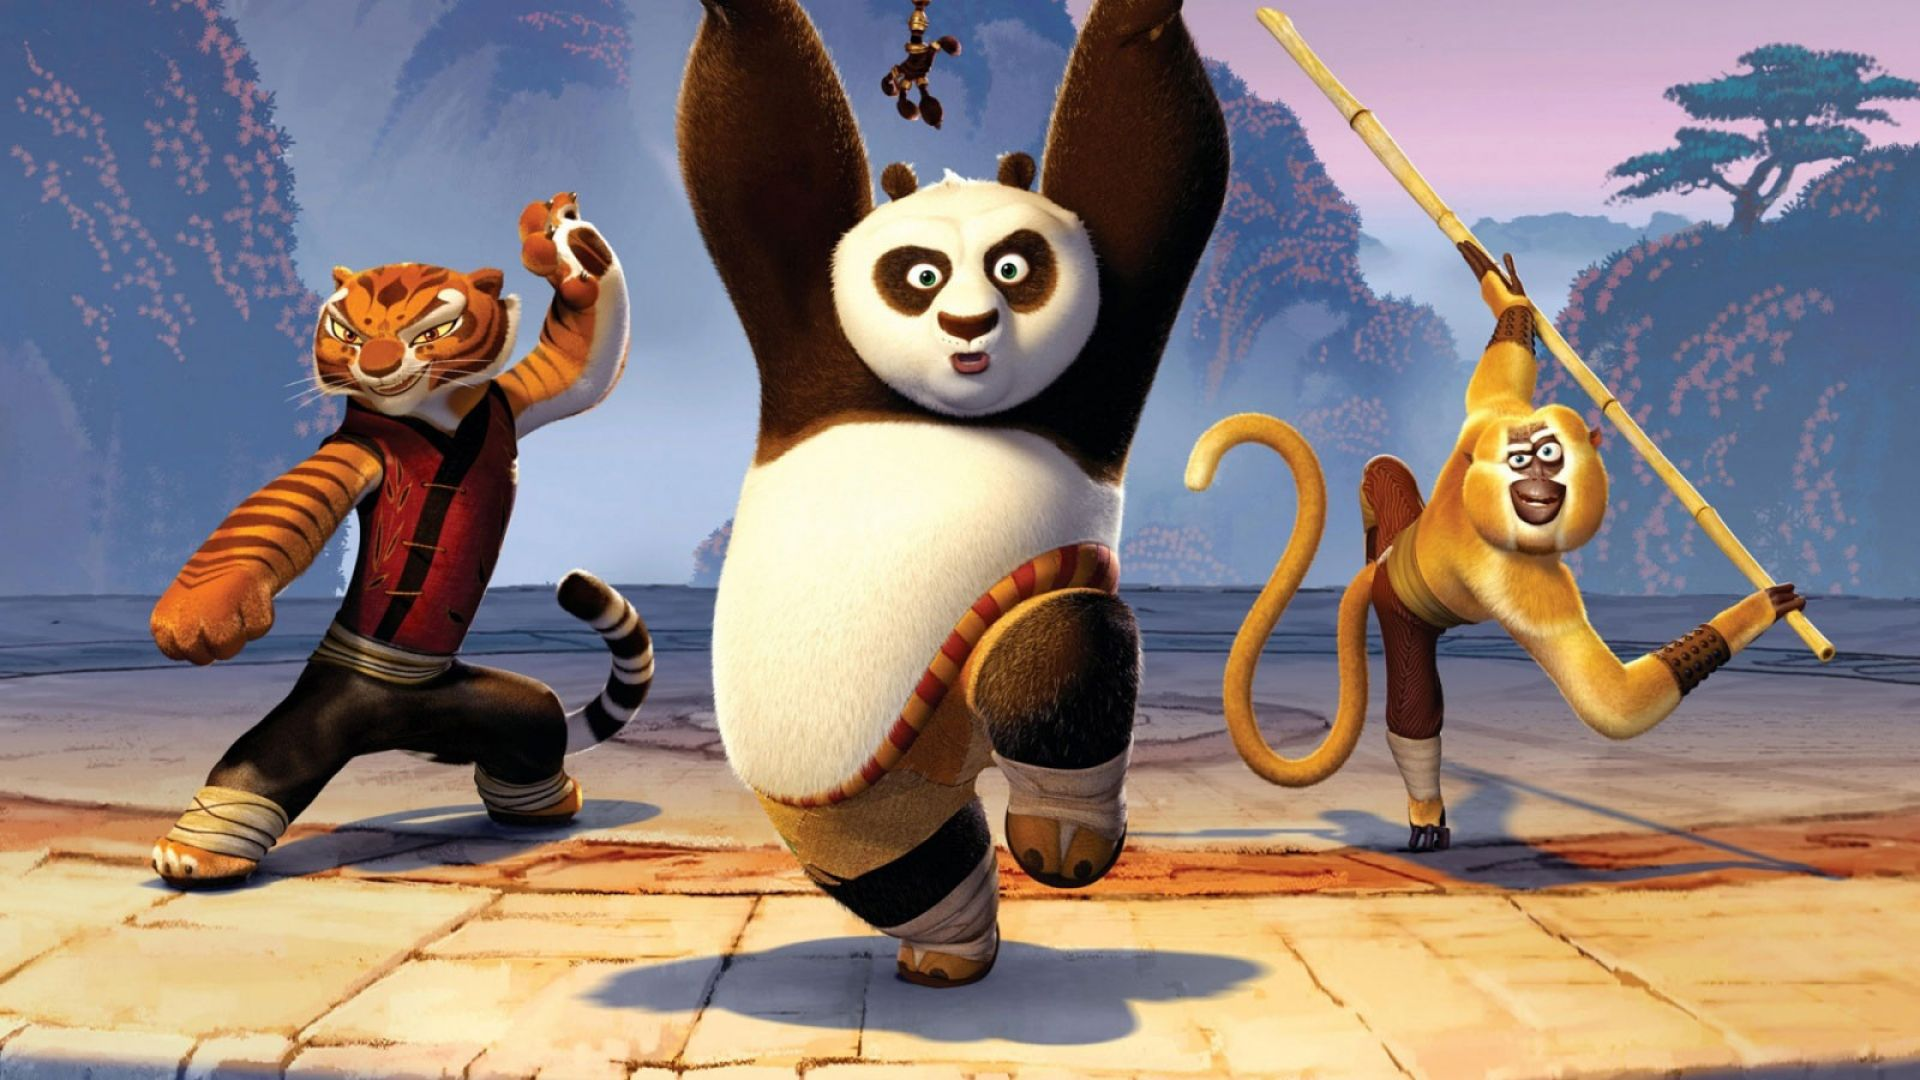 kung fu panda Kung fu panda 2008 pg 1h 34m when the valley of peace is threatened, lazy po the panda discovers his destiny as the chosen one and trains to become a kung fu hero.